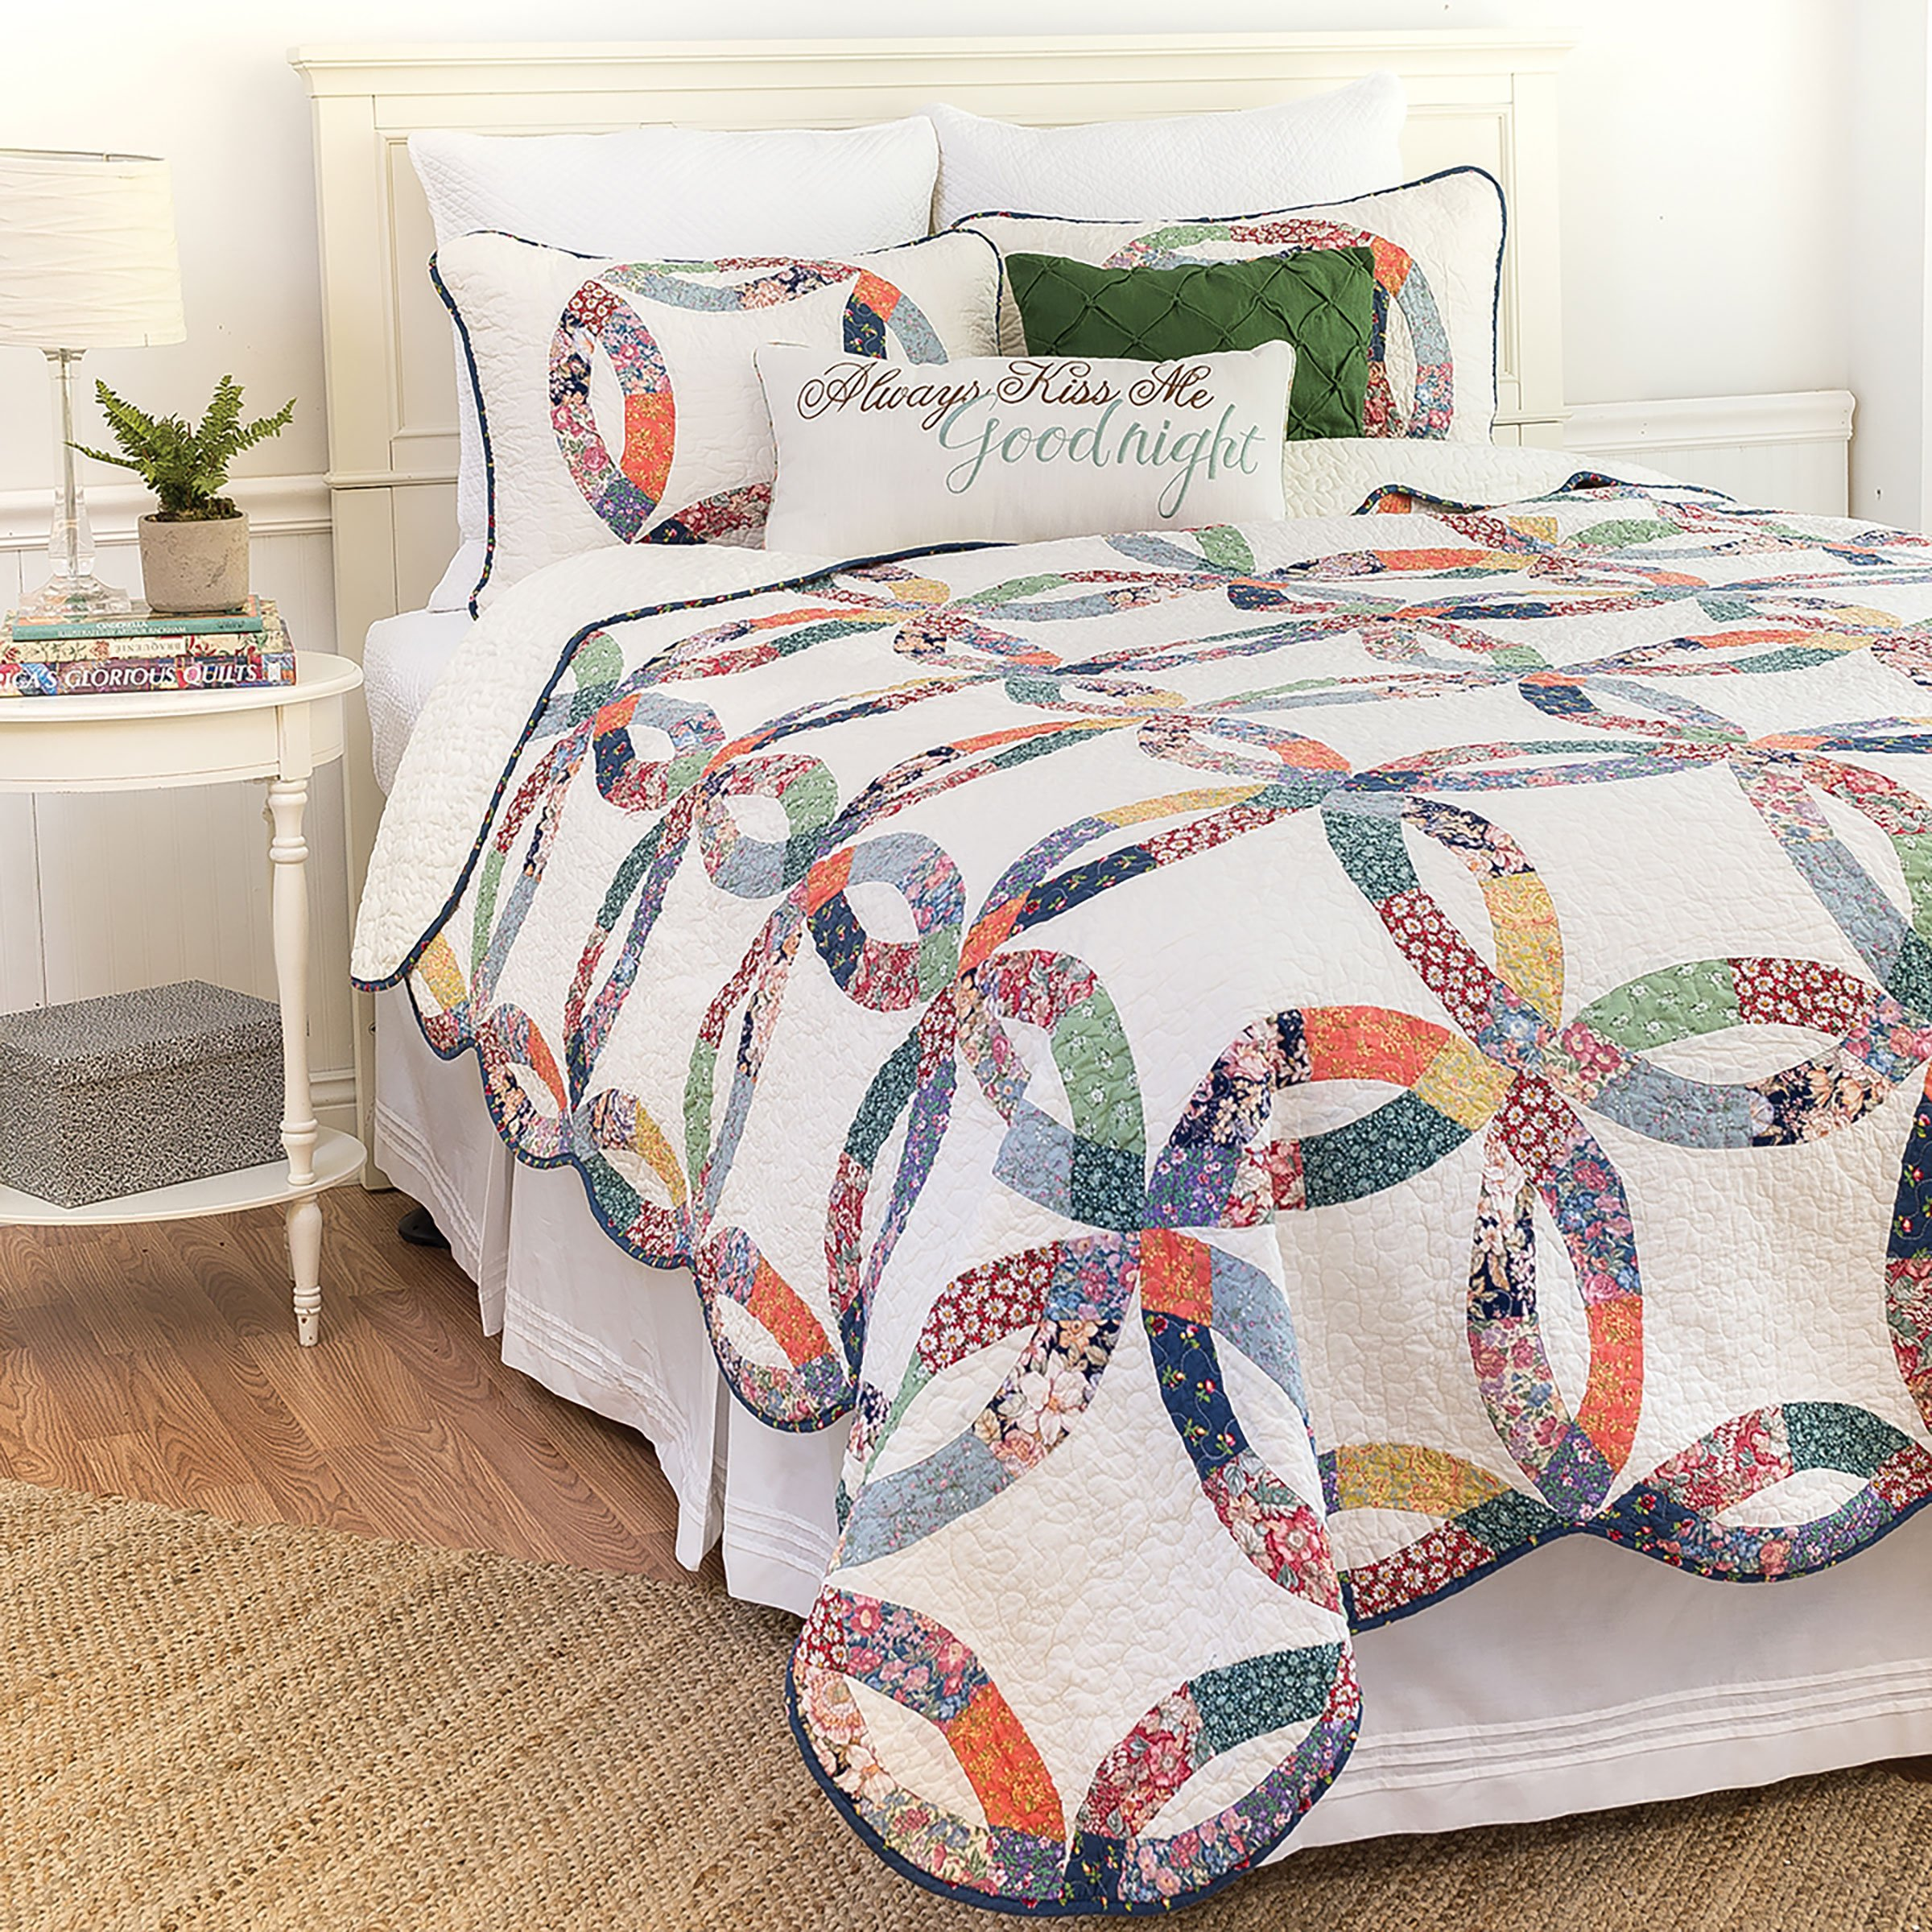 C&F Home 82113.3KSET Heritage Wedding Ring King 3Piece Cotton Quilt Set,Multicolor,King by C&F Home